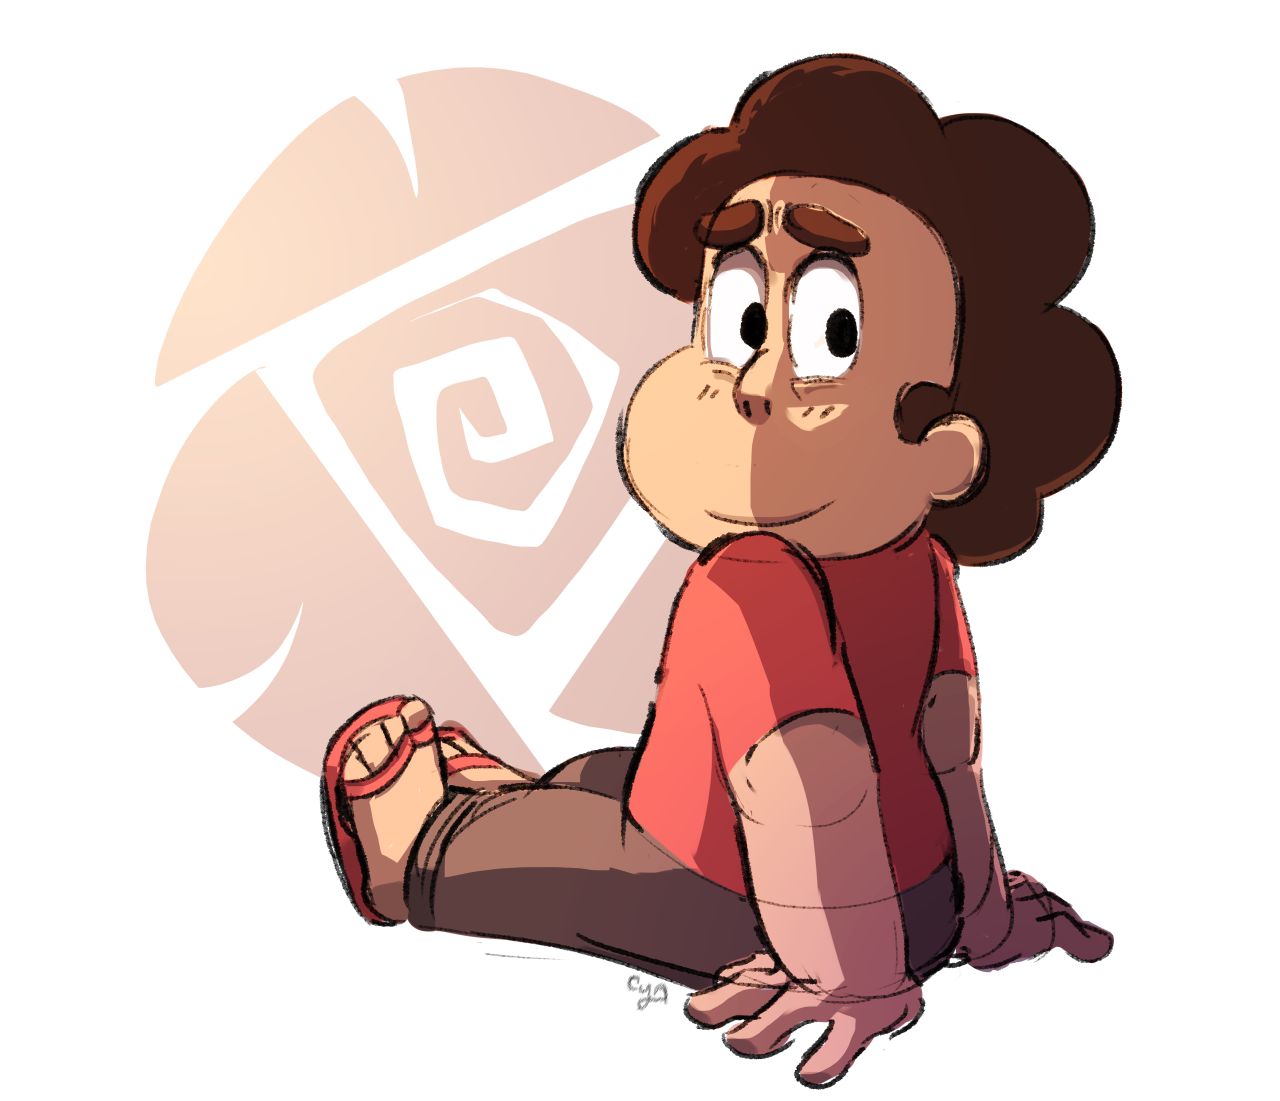 hanging out with steven would cure my depression